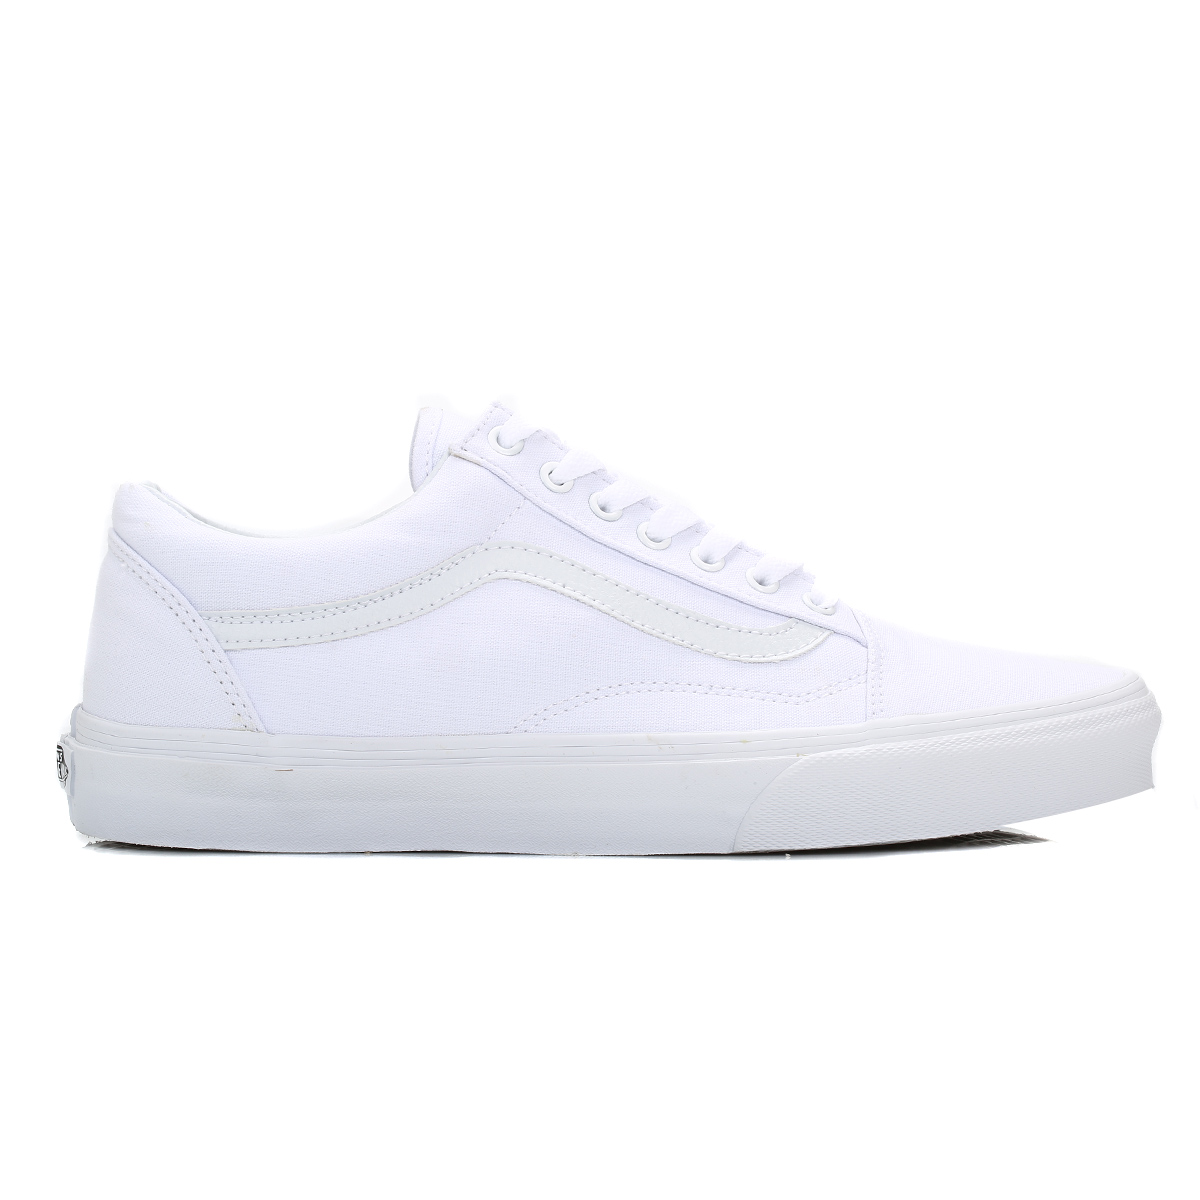 Vans Mens Trainers True White Old Skool Canvas Lace Up Sport Casual